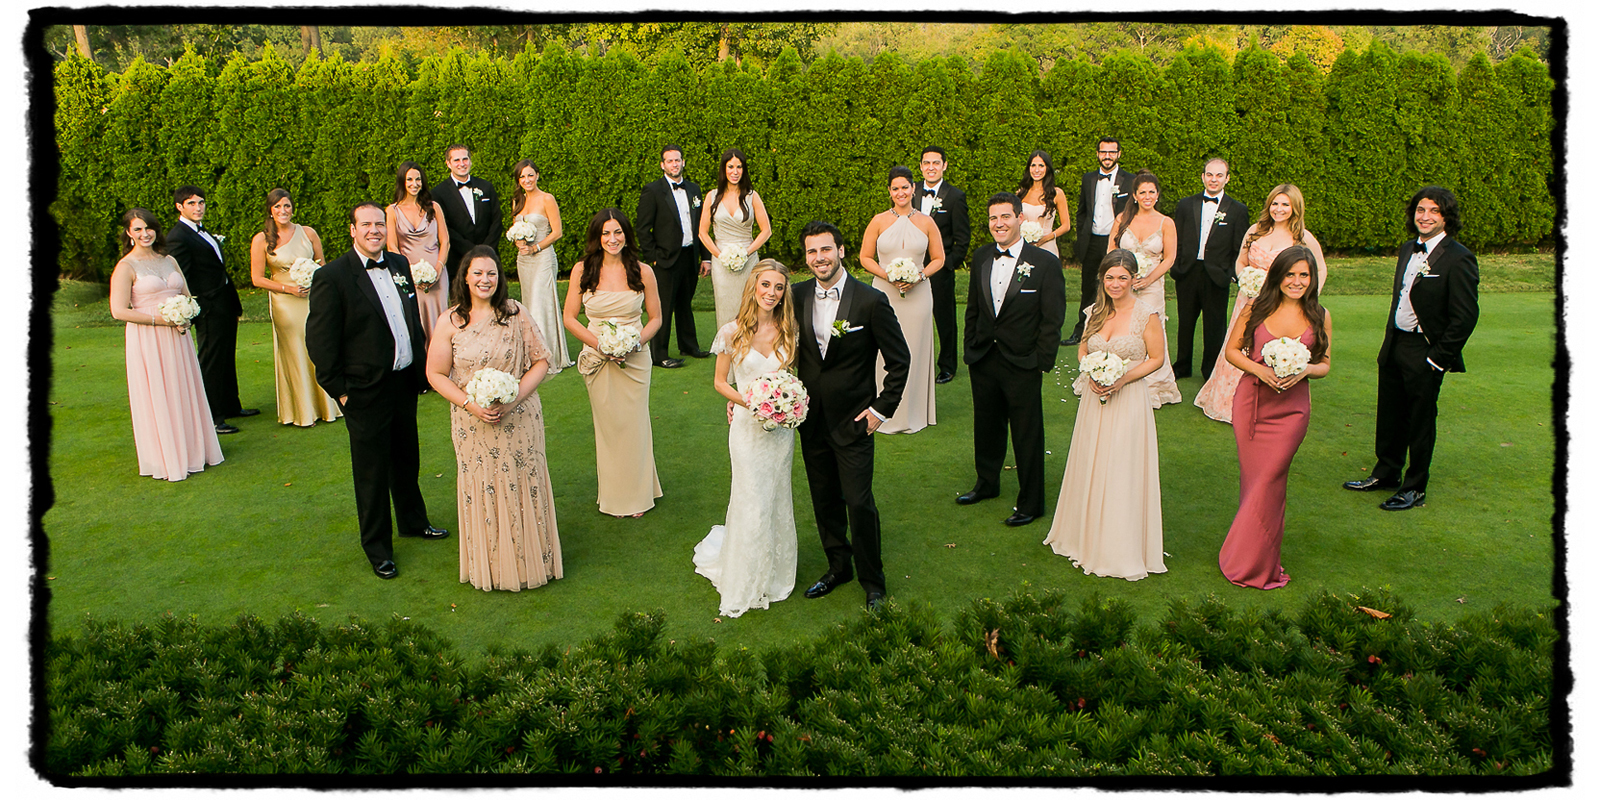 Jayme and Brad's black tie bridal party in shades of pink at Fresh Meadow Country Club.